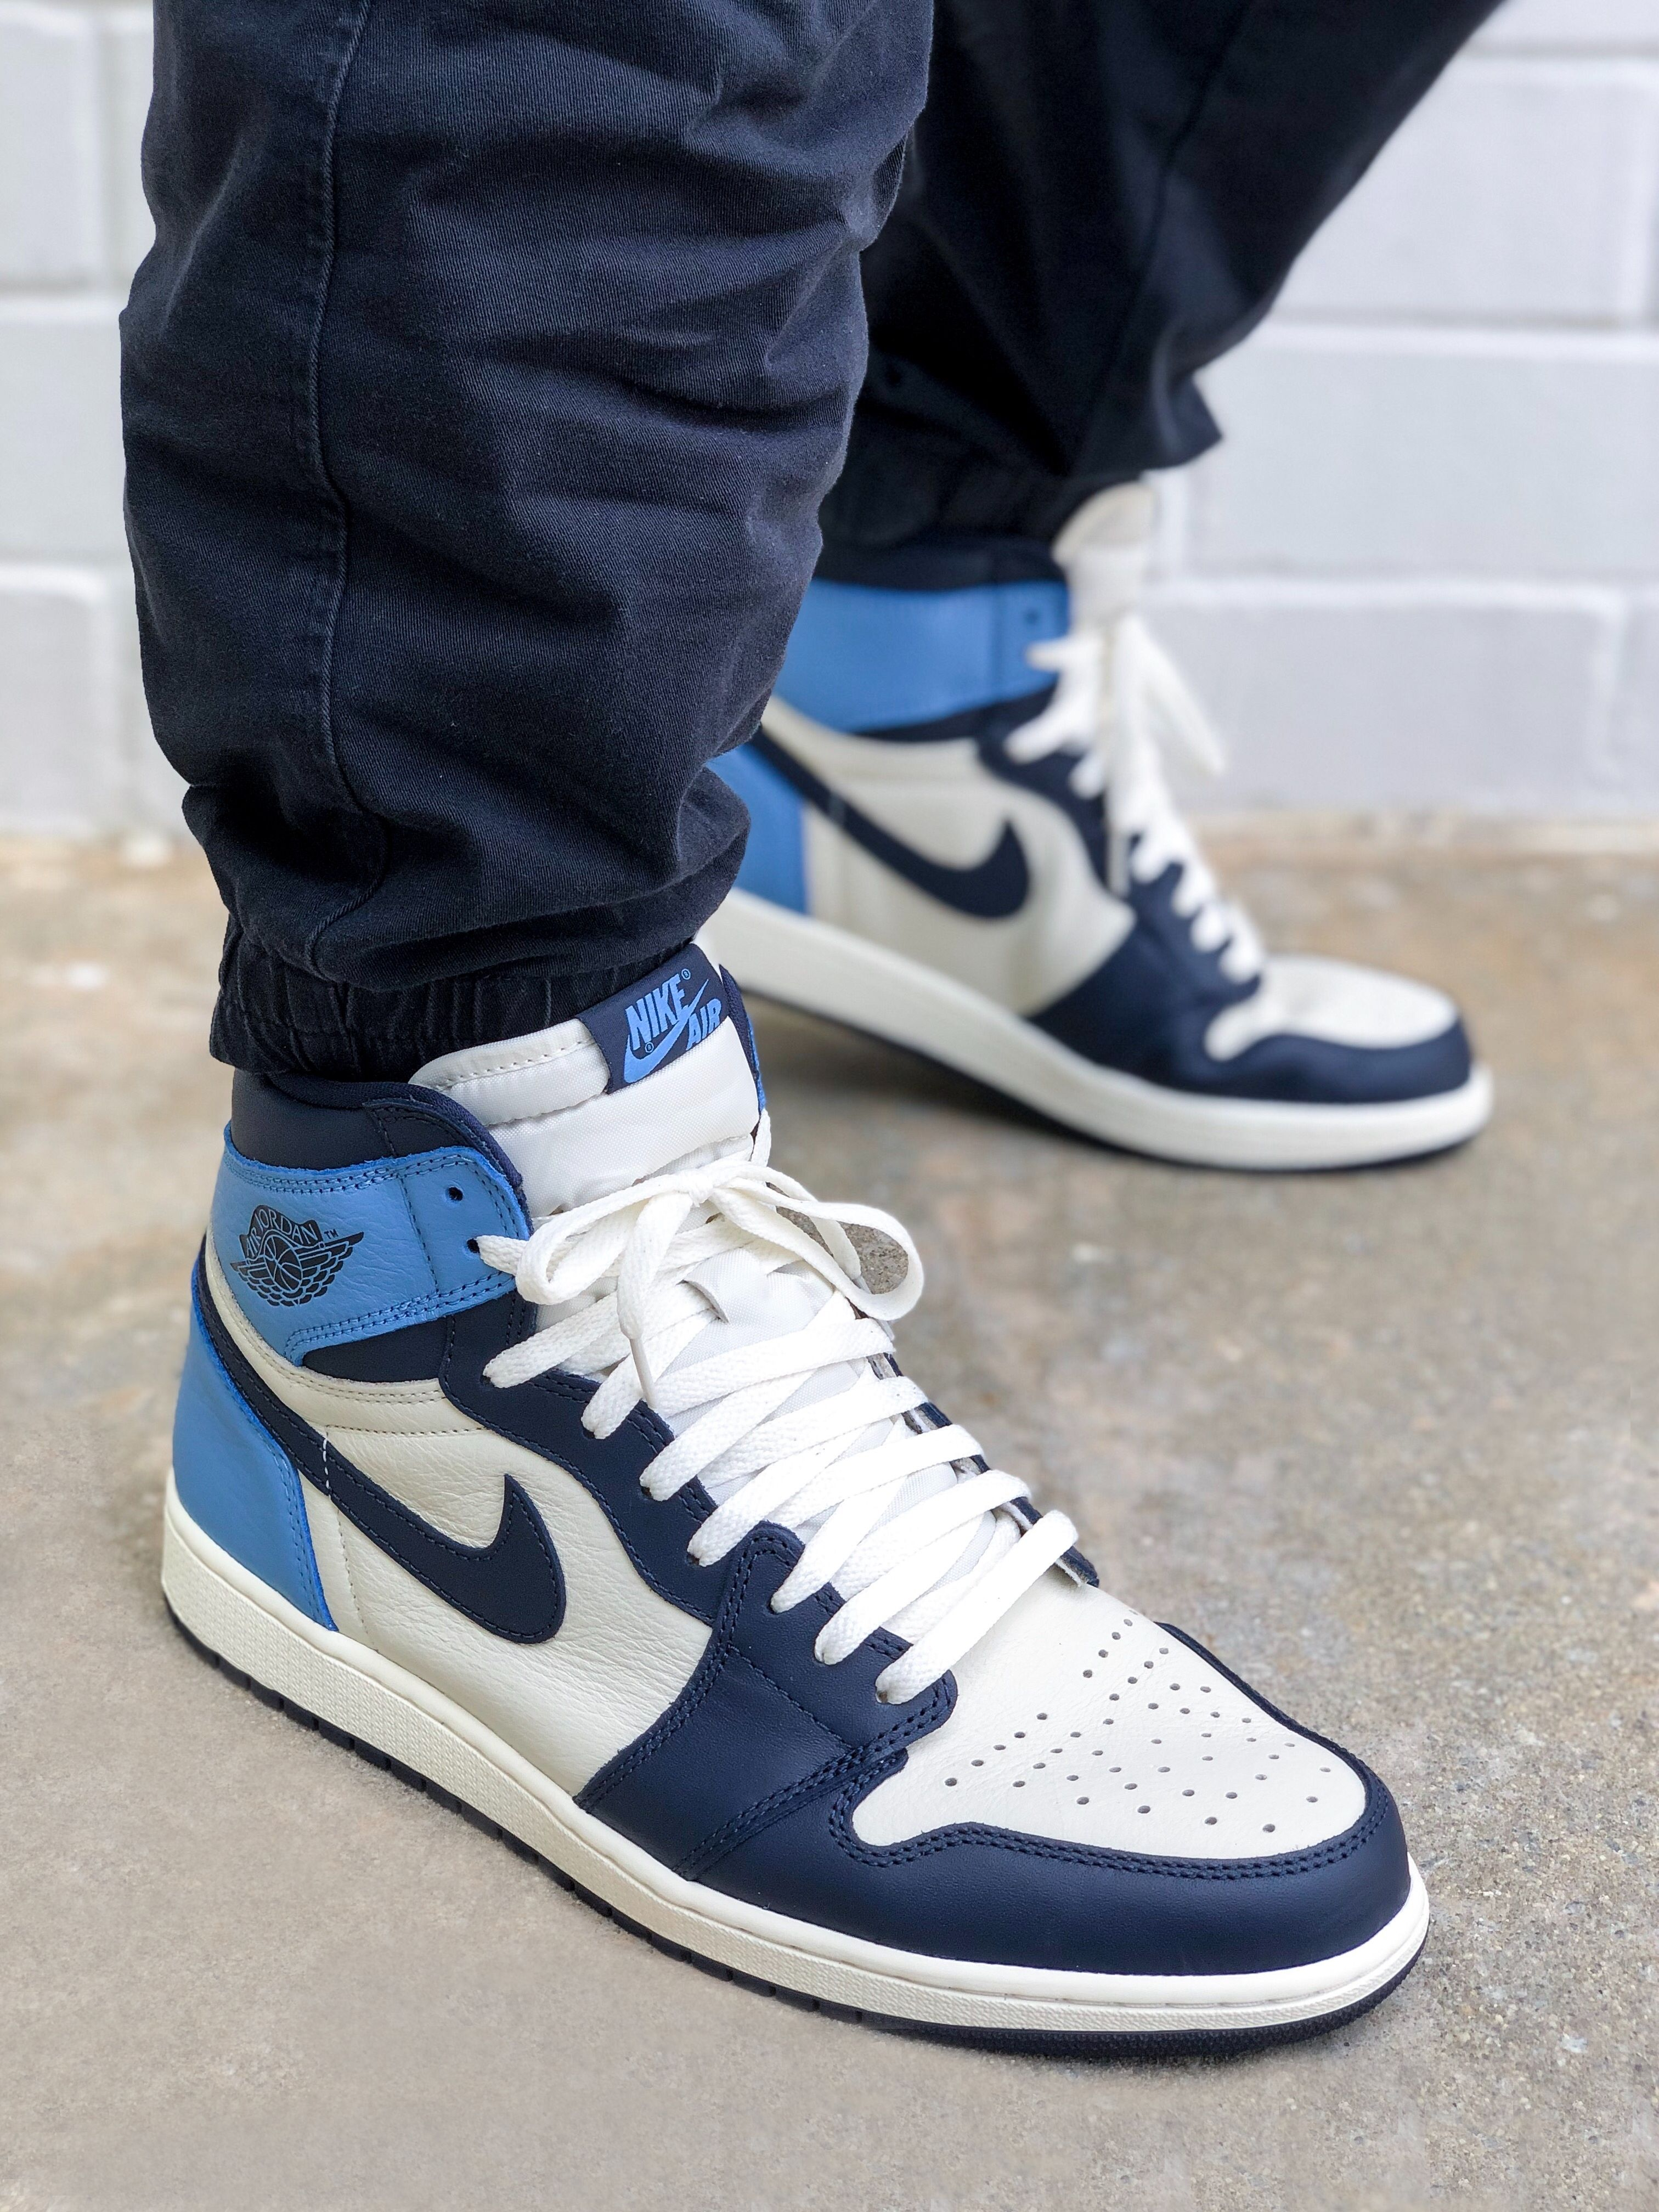 Where to buy shoe laces for the Air Jordan 1 UNC Obsidian